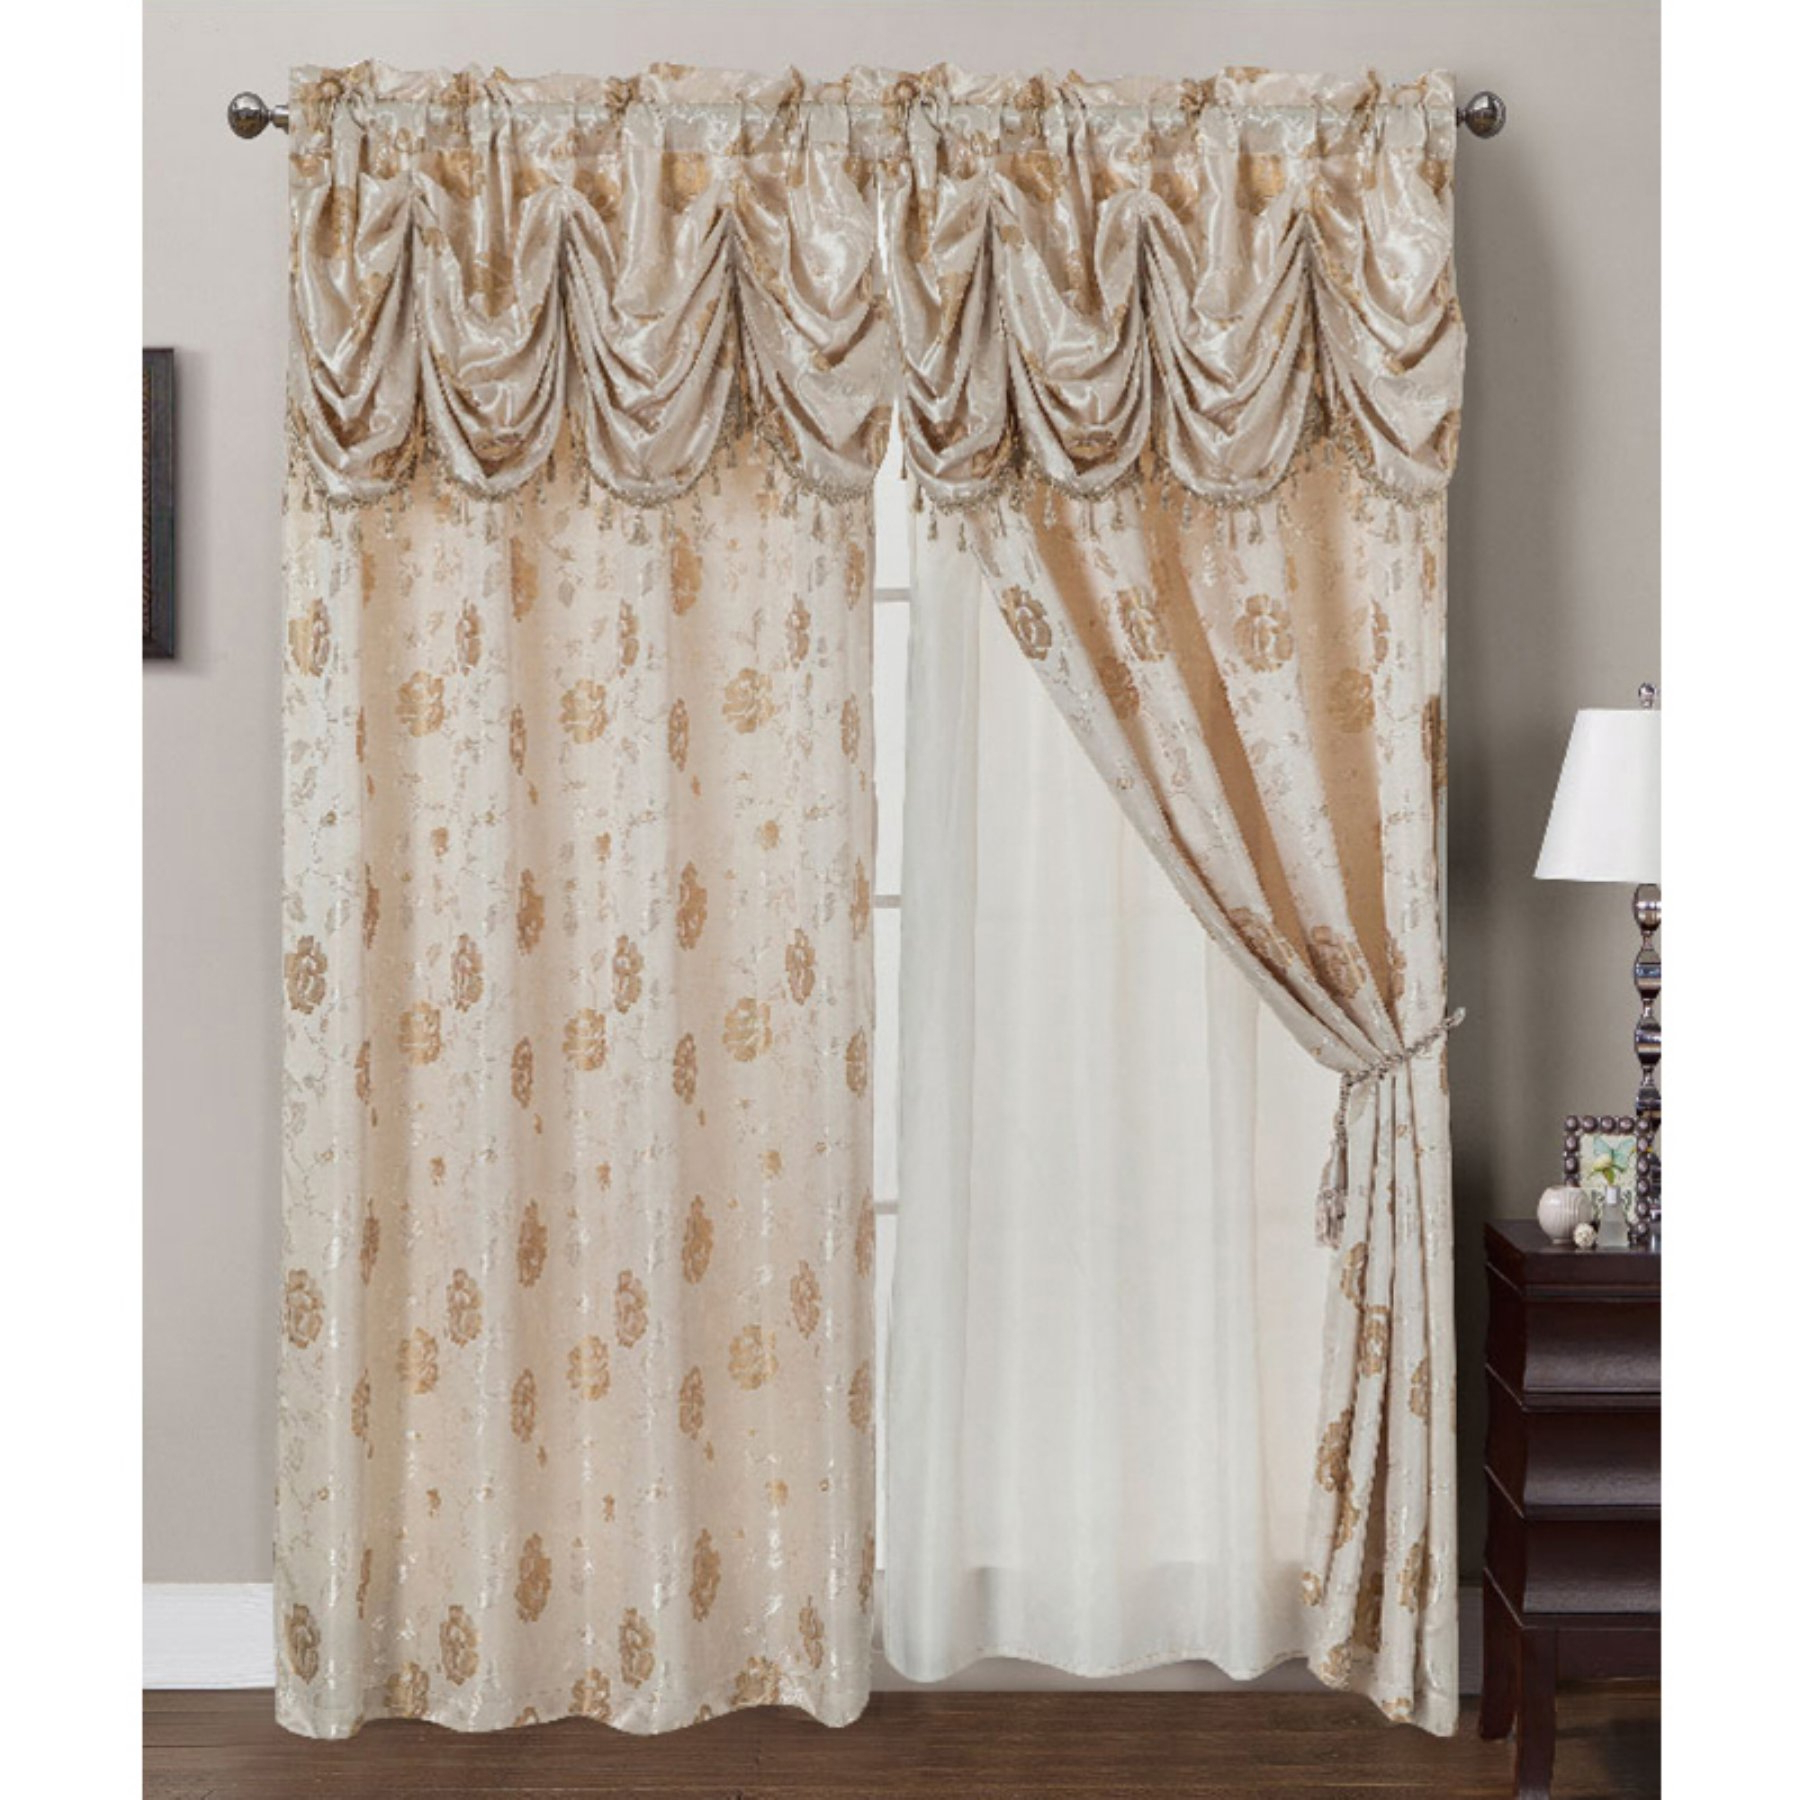 Best And Newest Rt Designers Collection Kelly Jacquard Double Rod Pocket Regarding Elegant Comfort Luxury Penelopie Jacquard Window Curtain Panel Pairs (View 15 of 20)